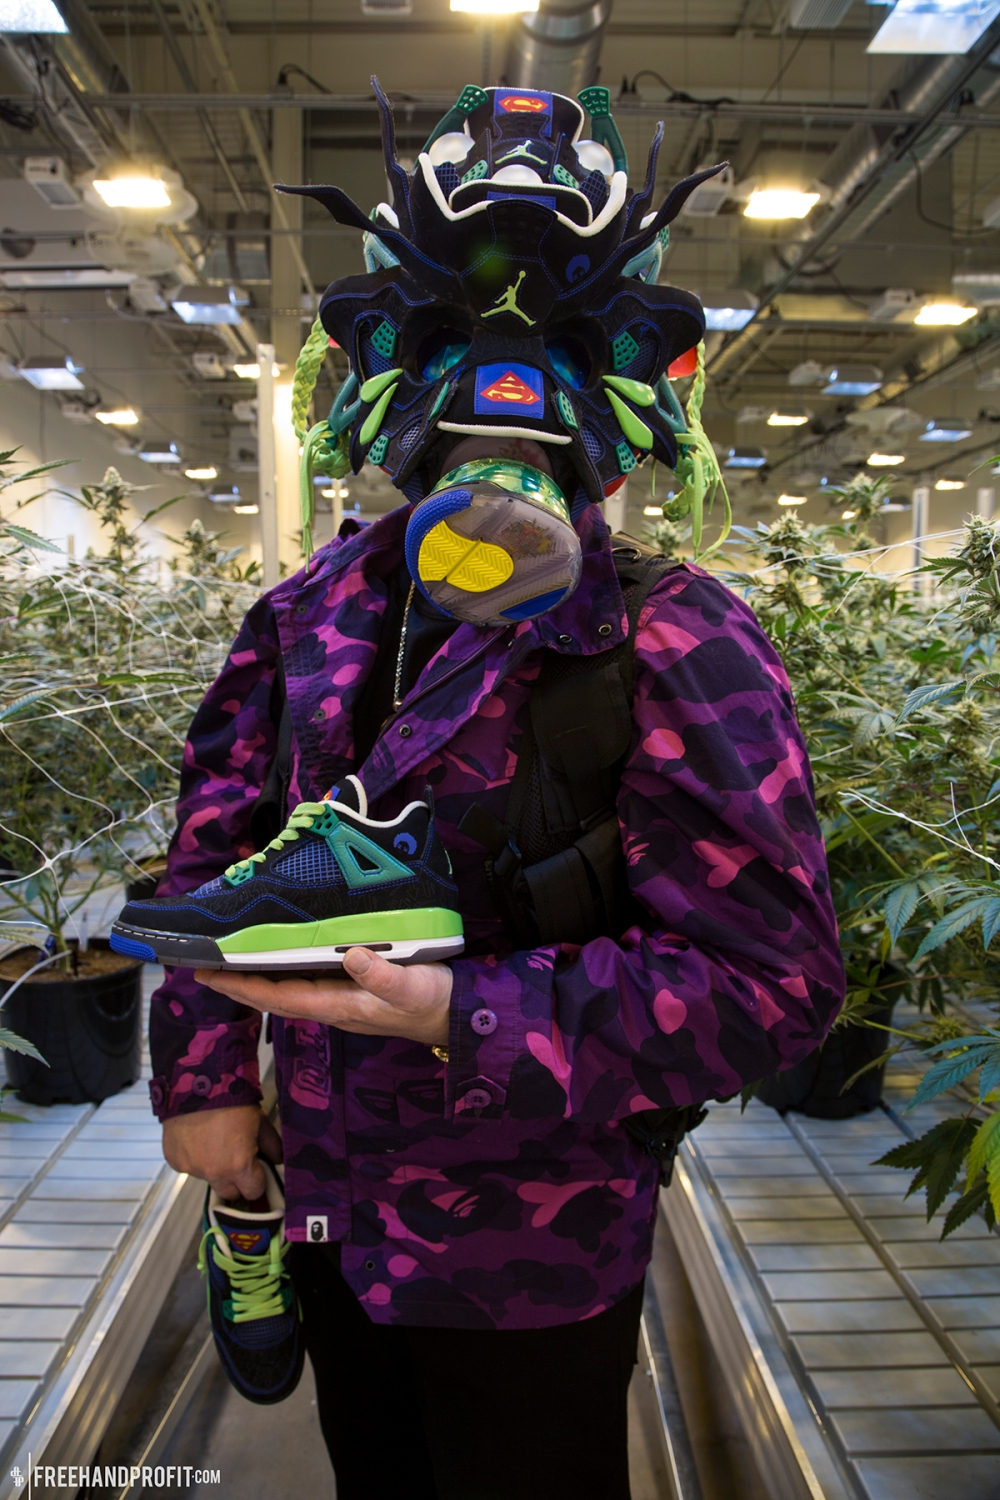 Doernbecher Jordan IV Gas Mask by Freehand Profit